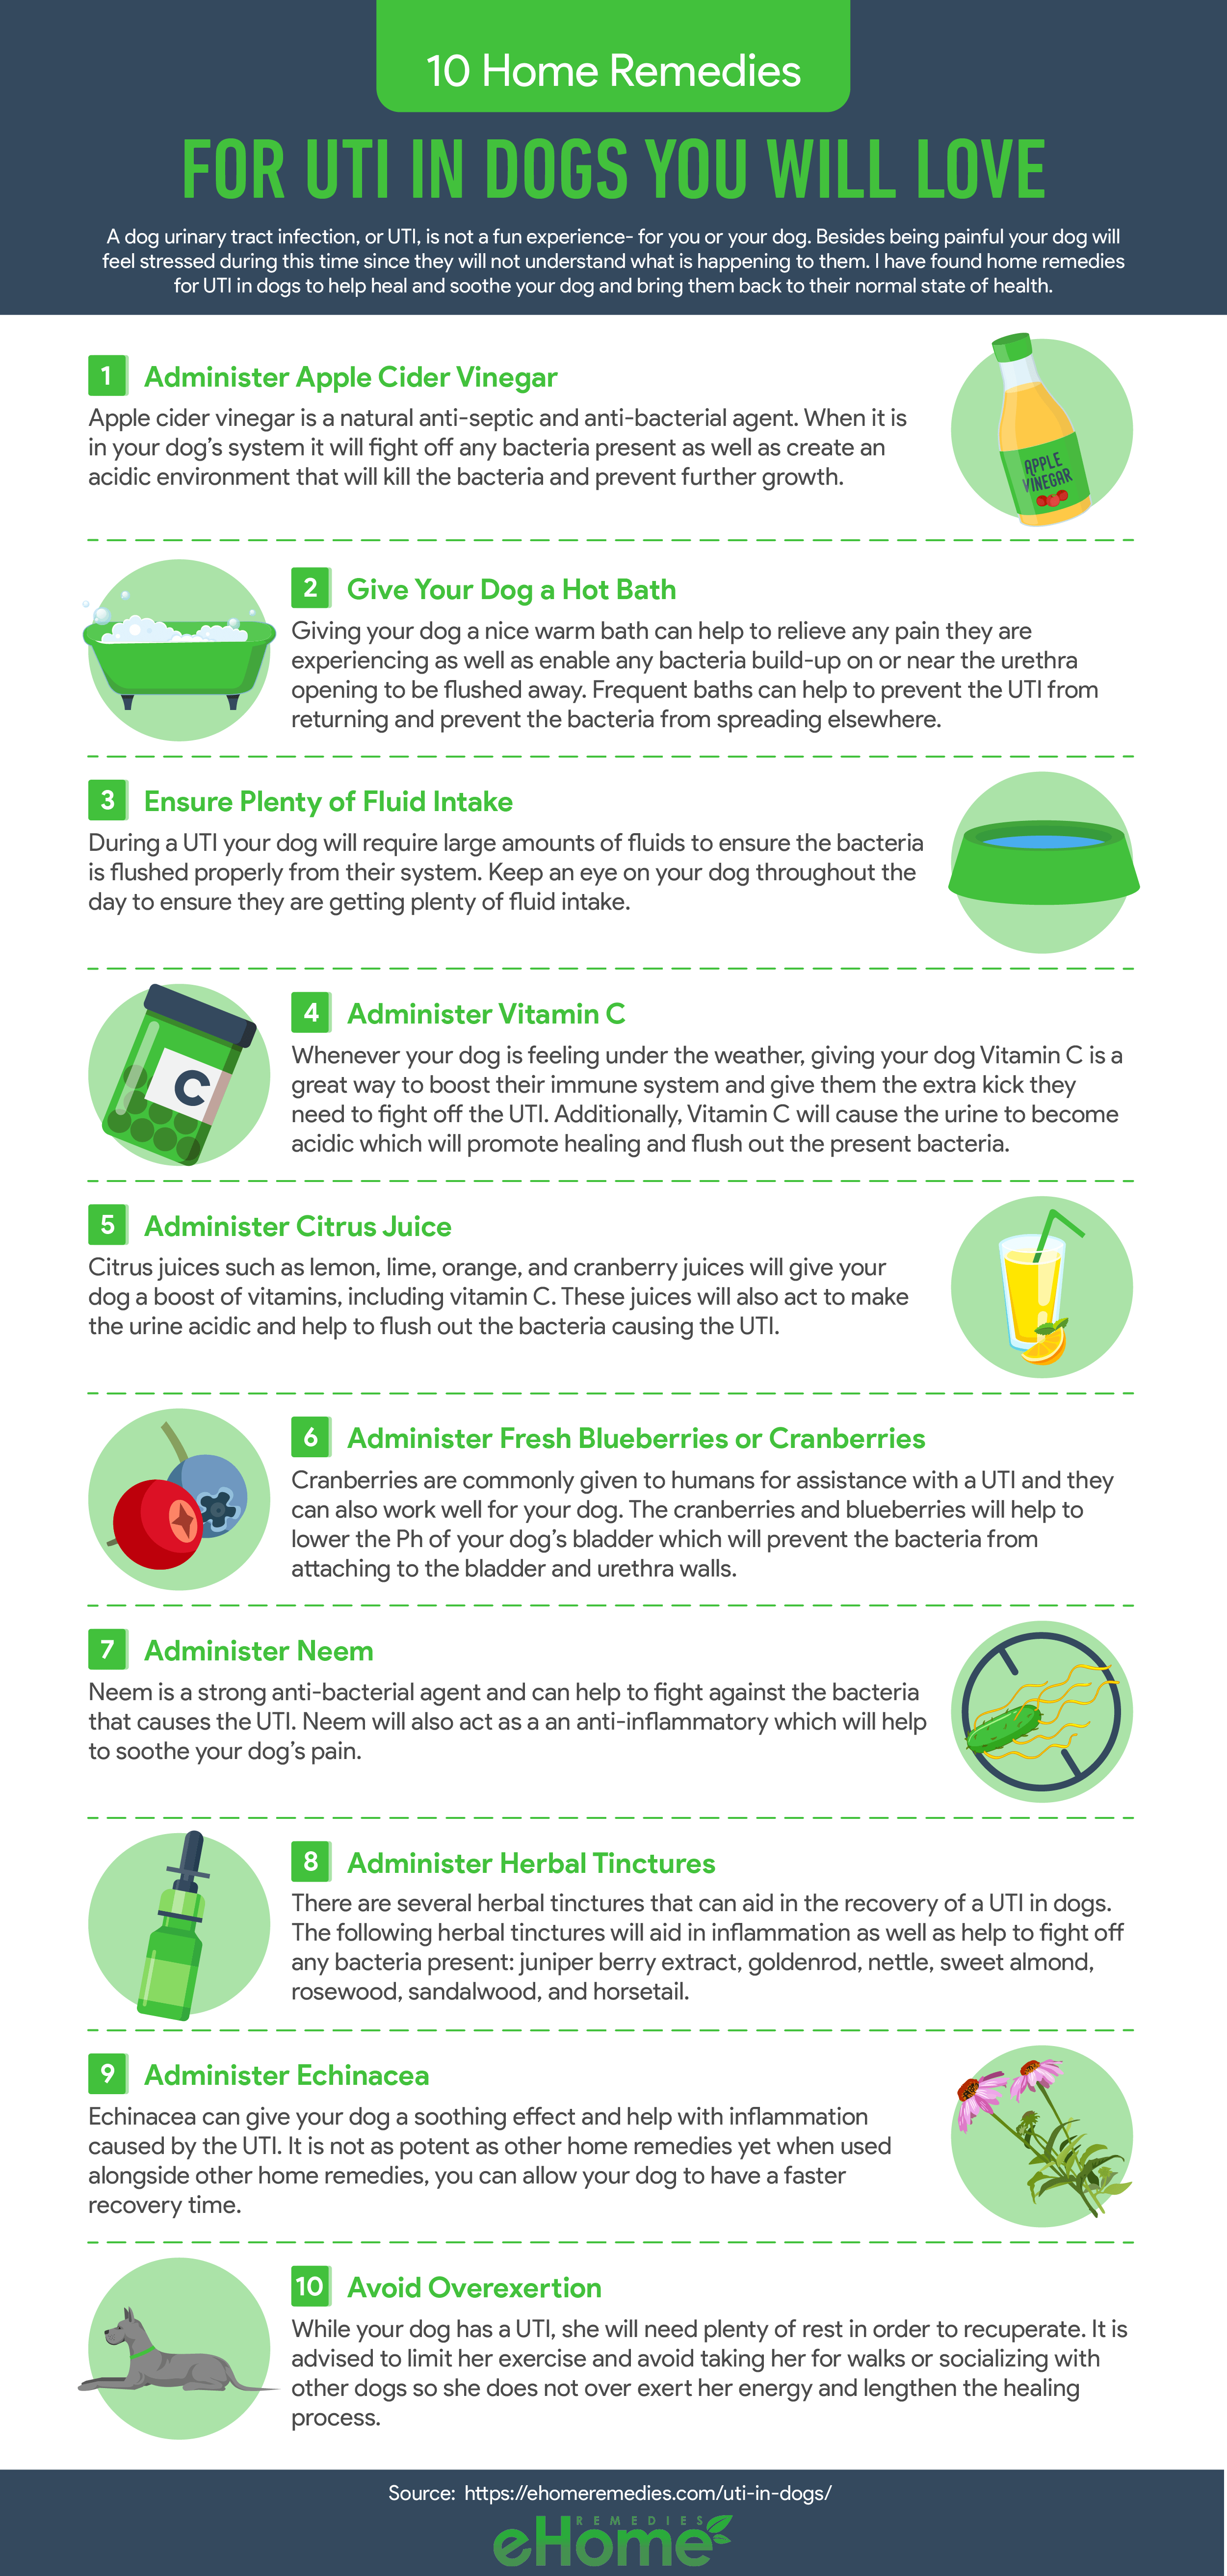 Home Remedies for Uti in Dogs Infographic